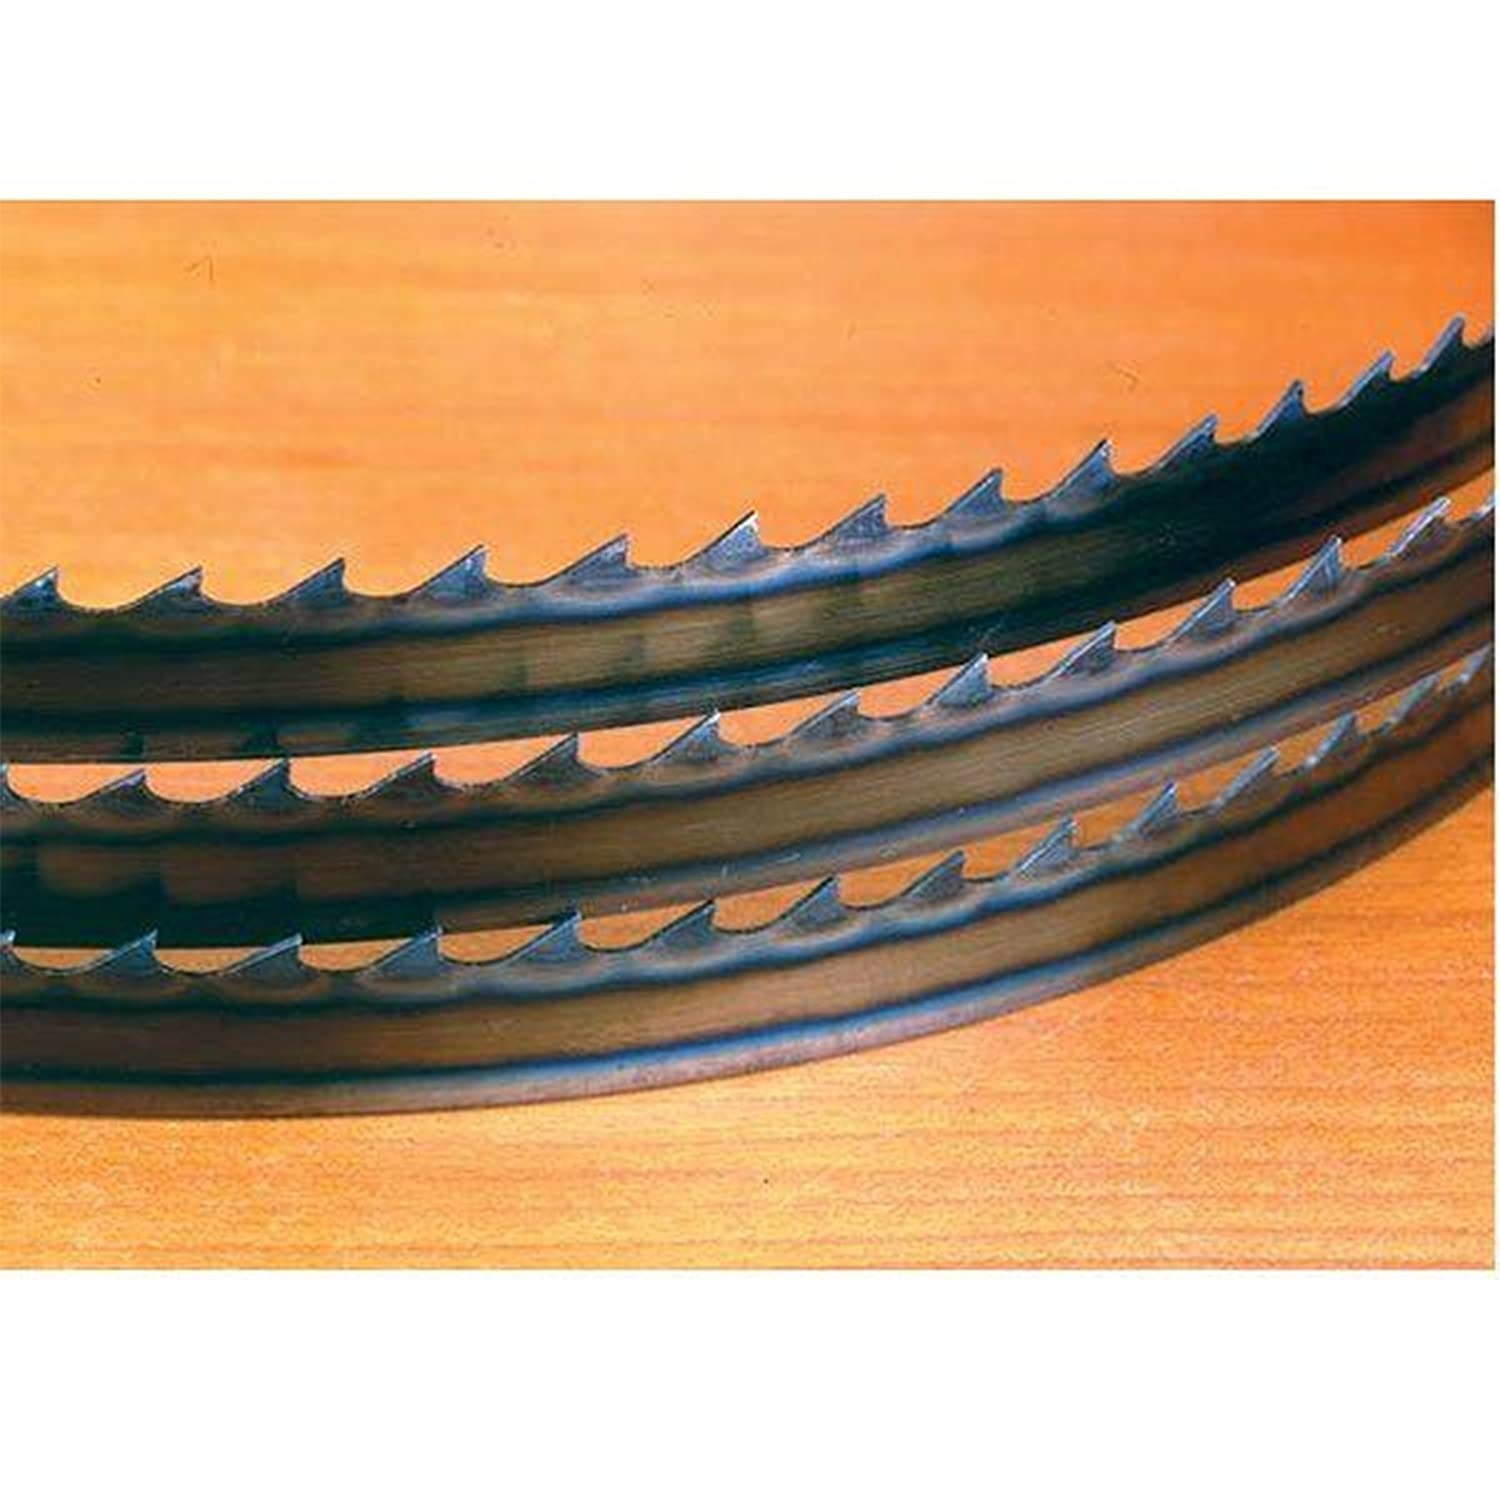 Timber Wolf Bandsaw Blade 111' x 1/4' x 6 TPI Alternet Set PS Wood Machines